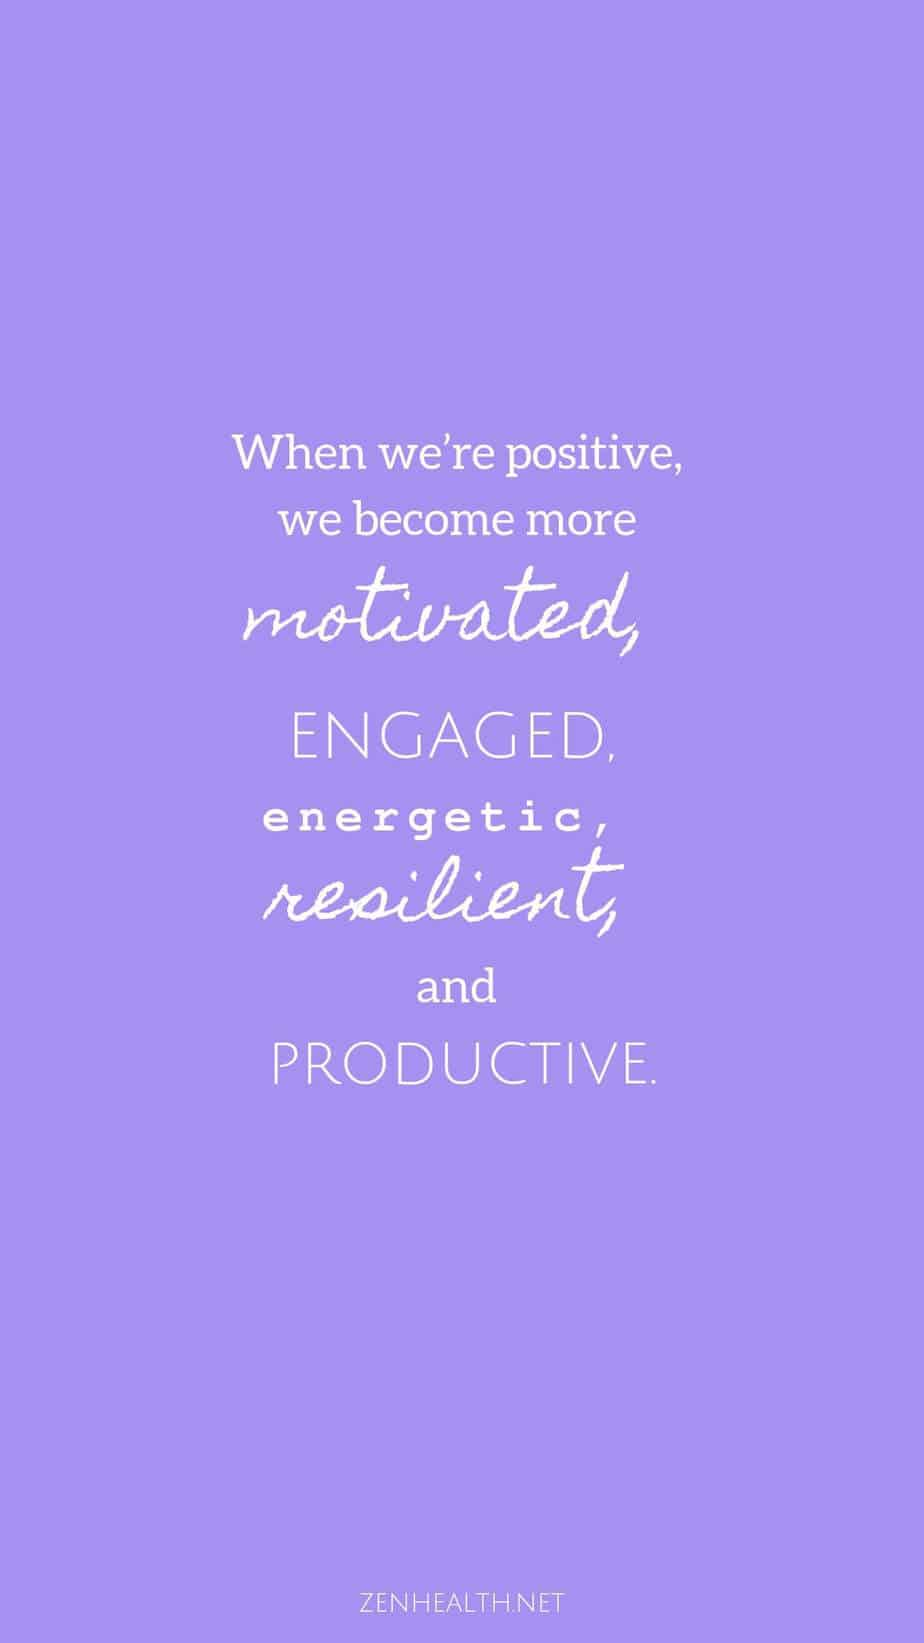 When we're positive, we become more motivated, engaged, energetic, resilient, and productive.